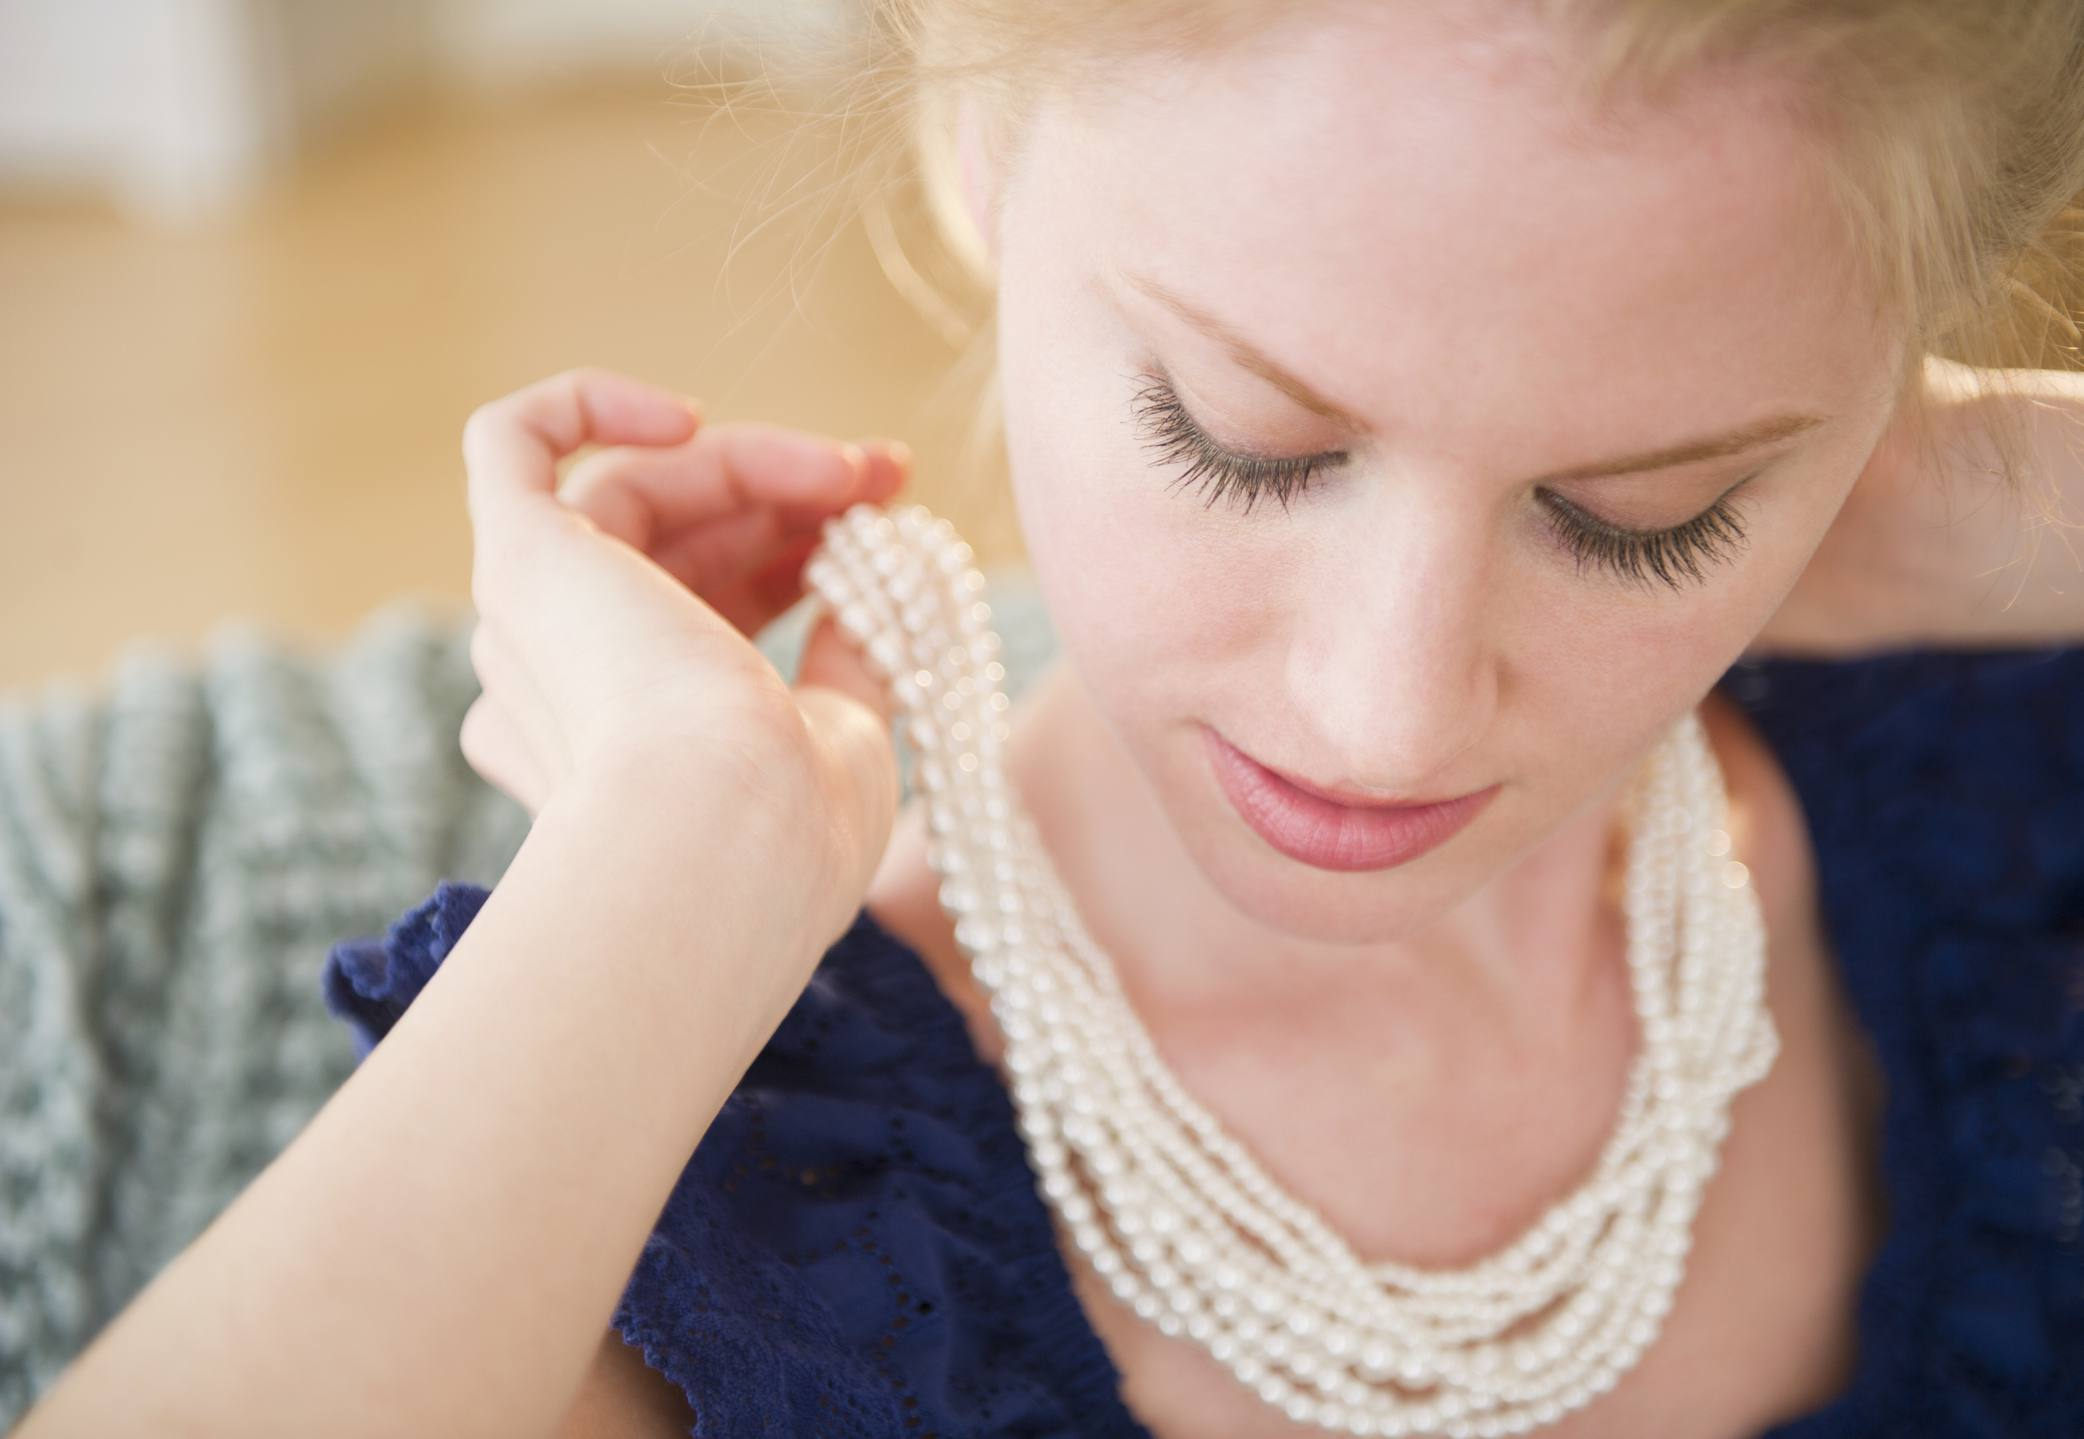 Woman fastening a layered pearl necklace